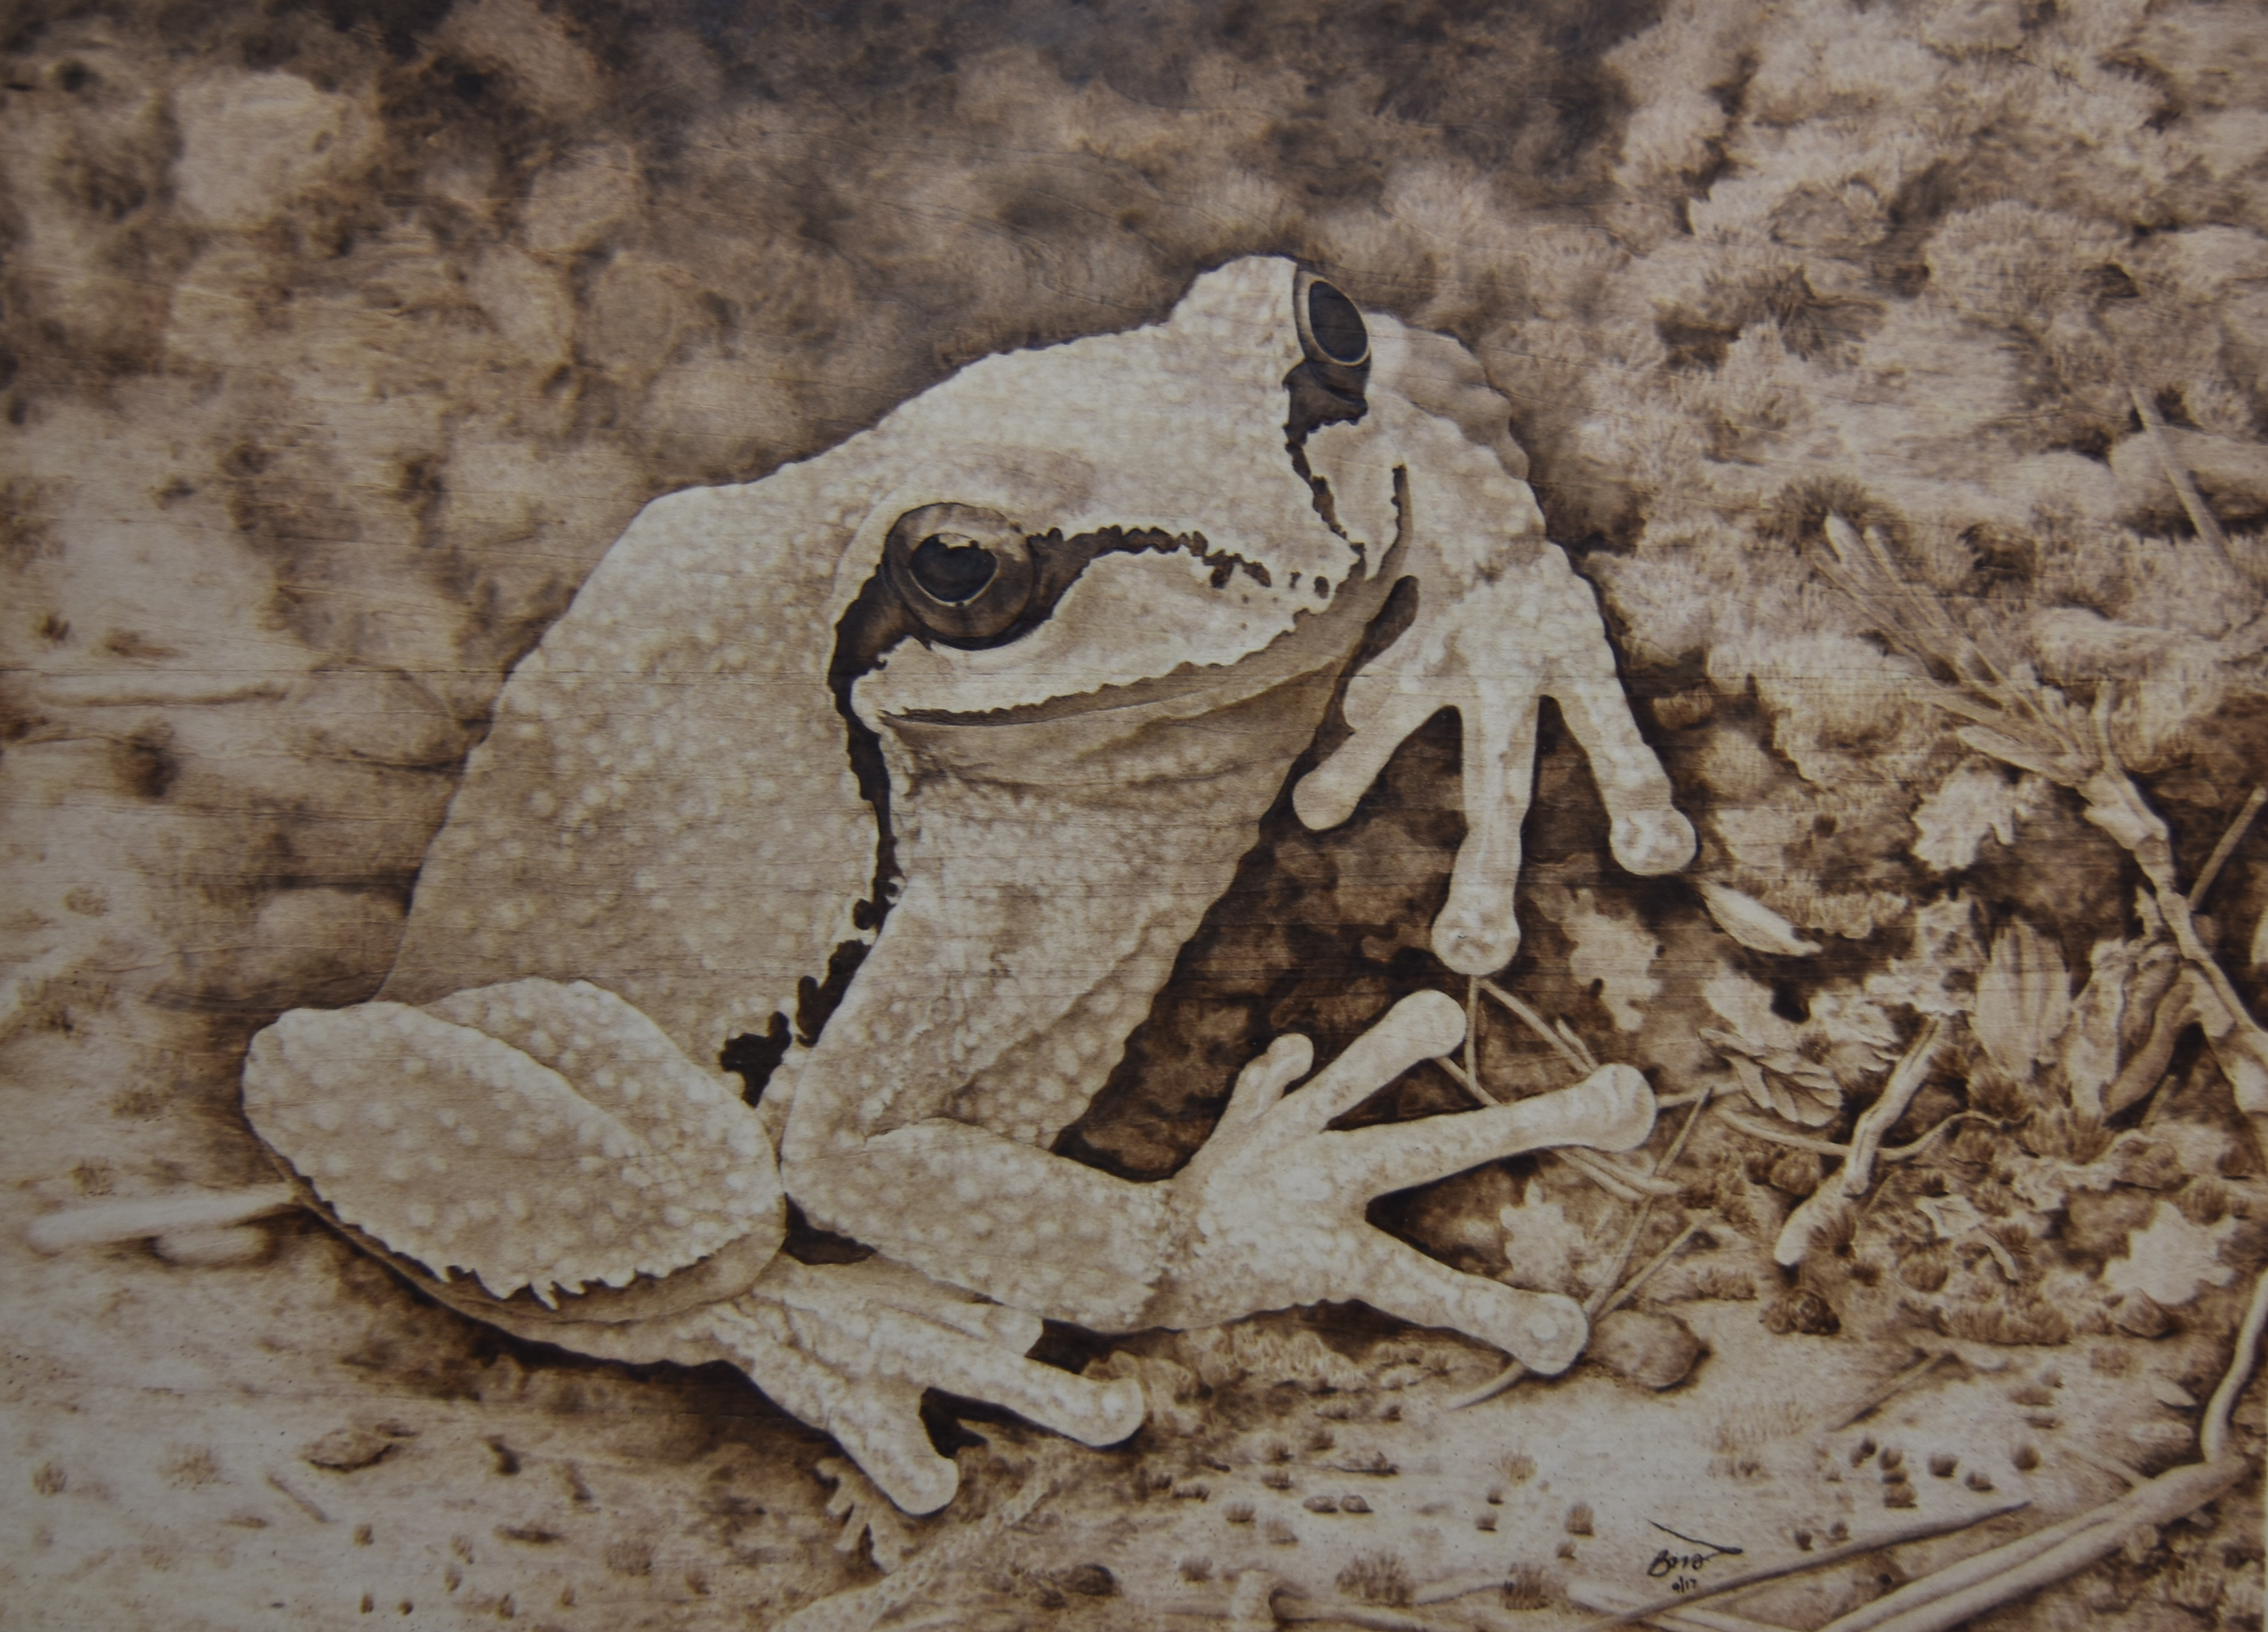 ART Wood Burning I Have A Small Pond In My Backyard And The Spring It Becomes Tree Frog Wooing Grounds From Dusk Till Dawn There Is Chorus Of